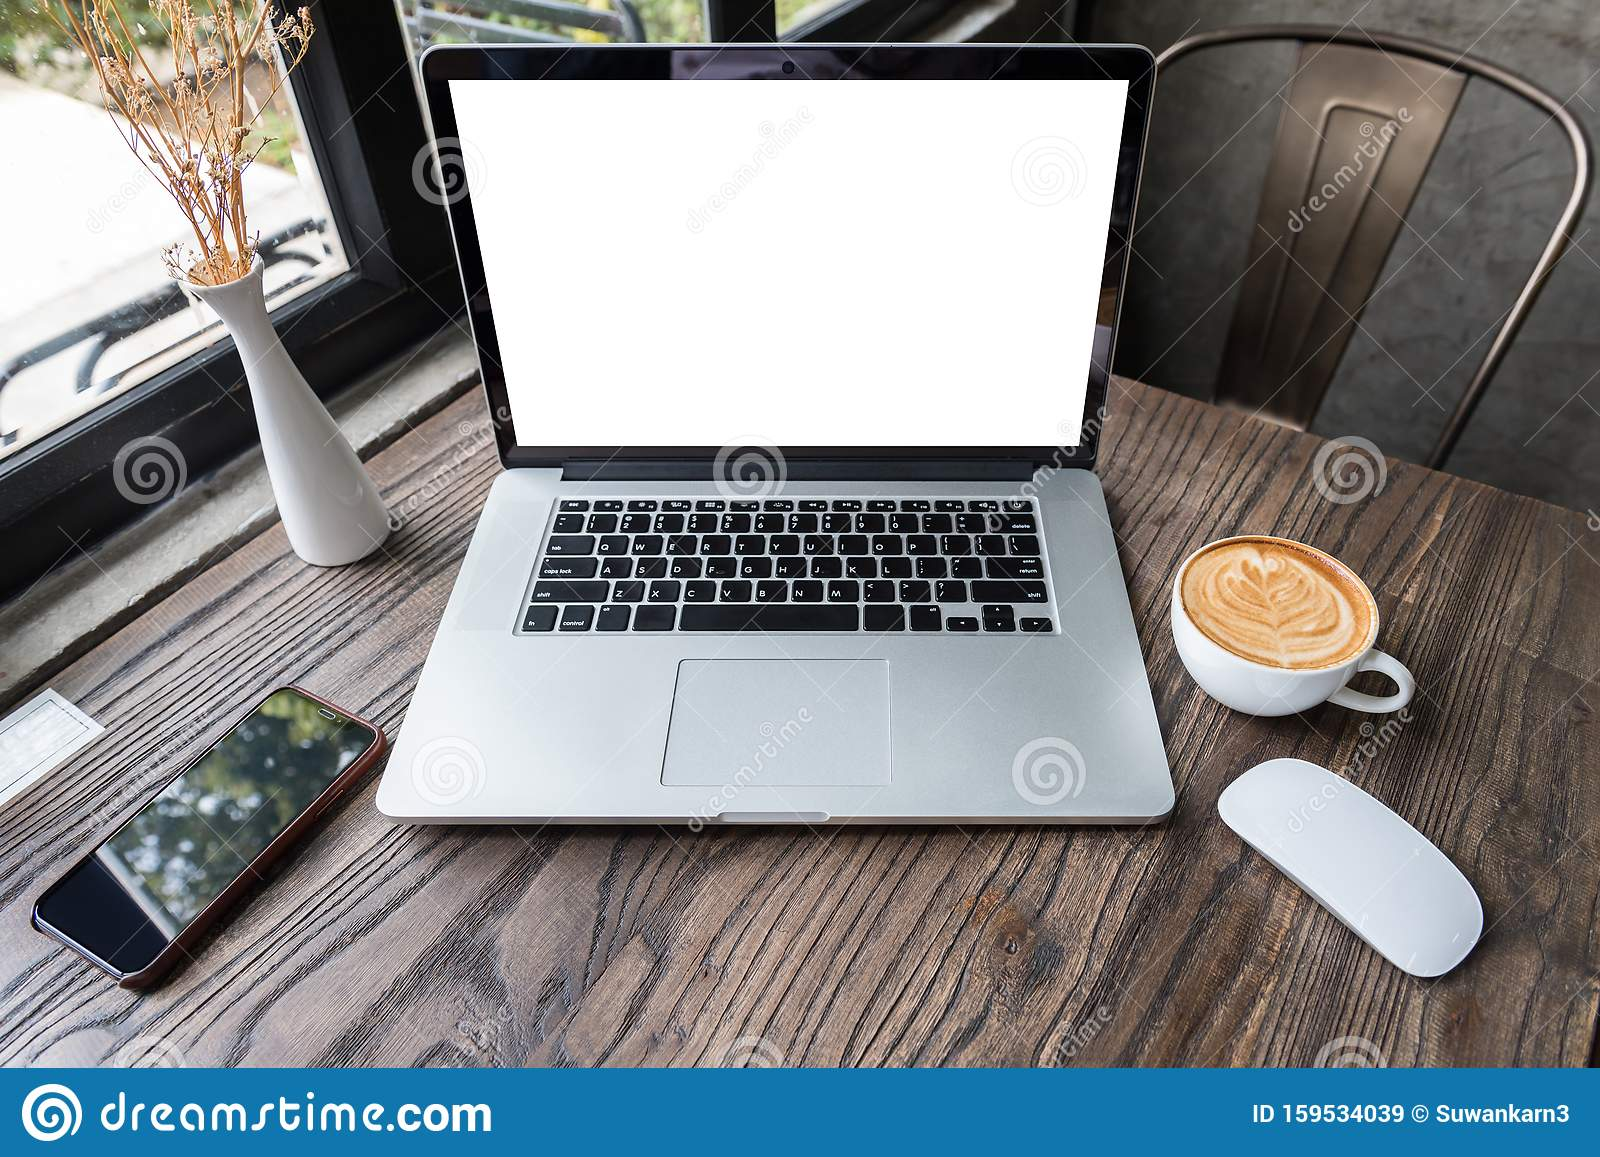 Blank Screen Laptop Computer With Mouse And Smart Phone On